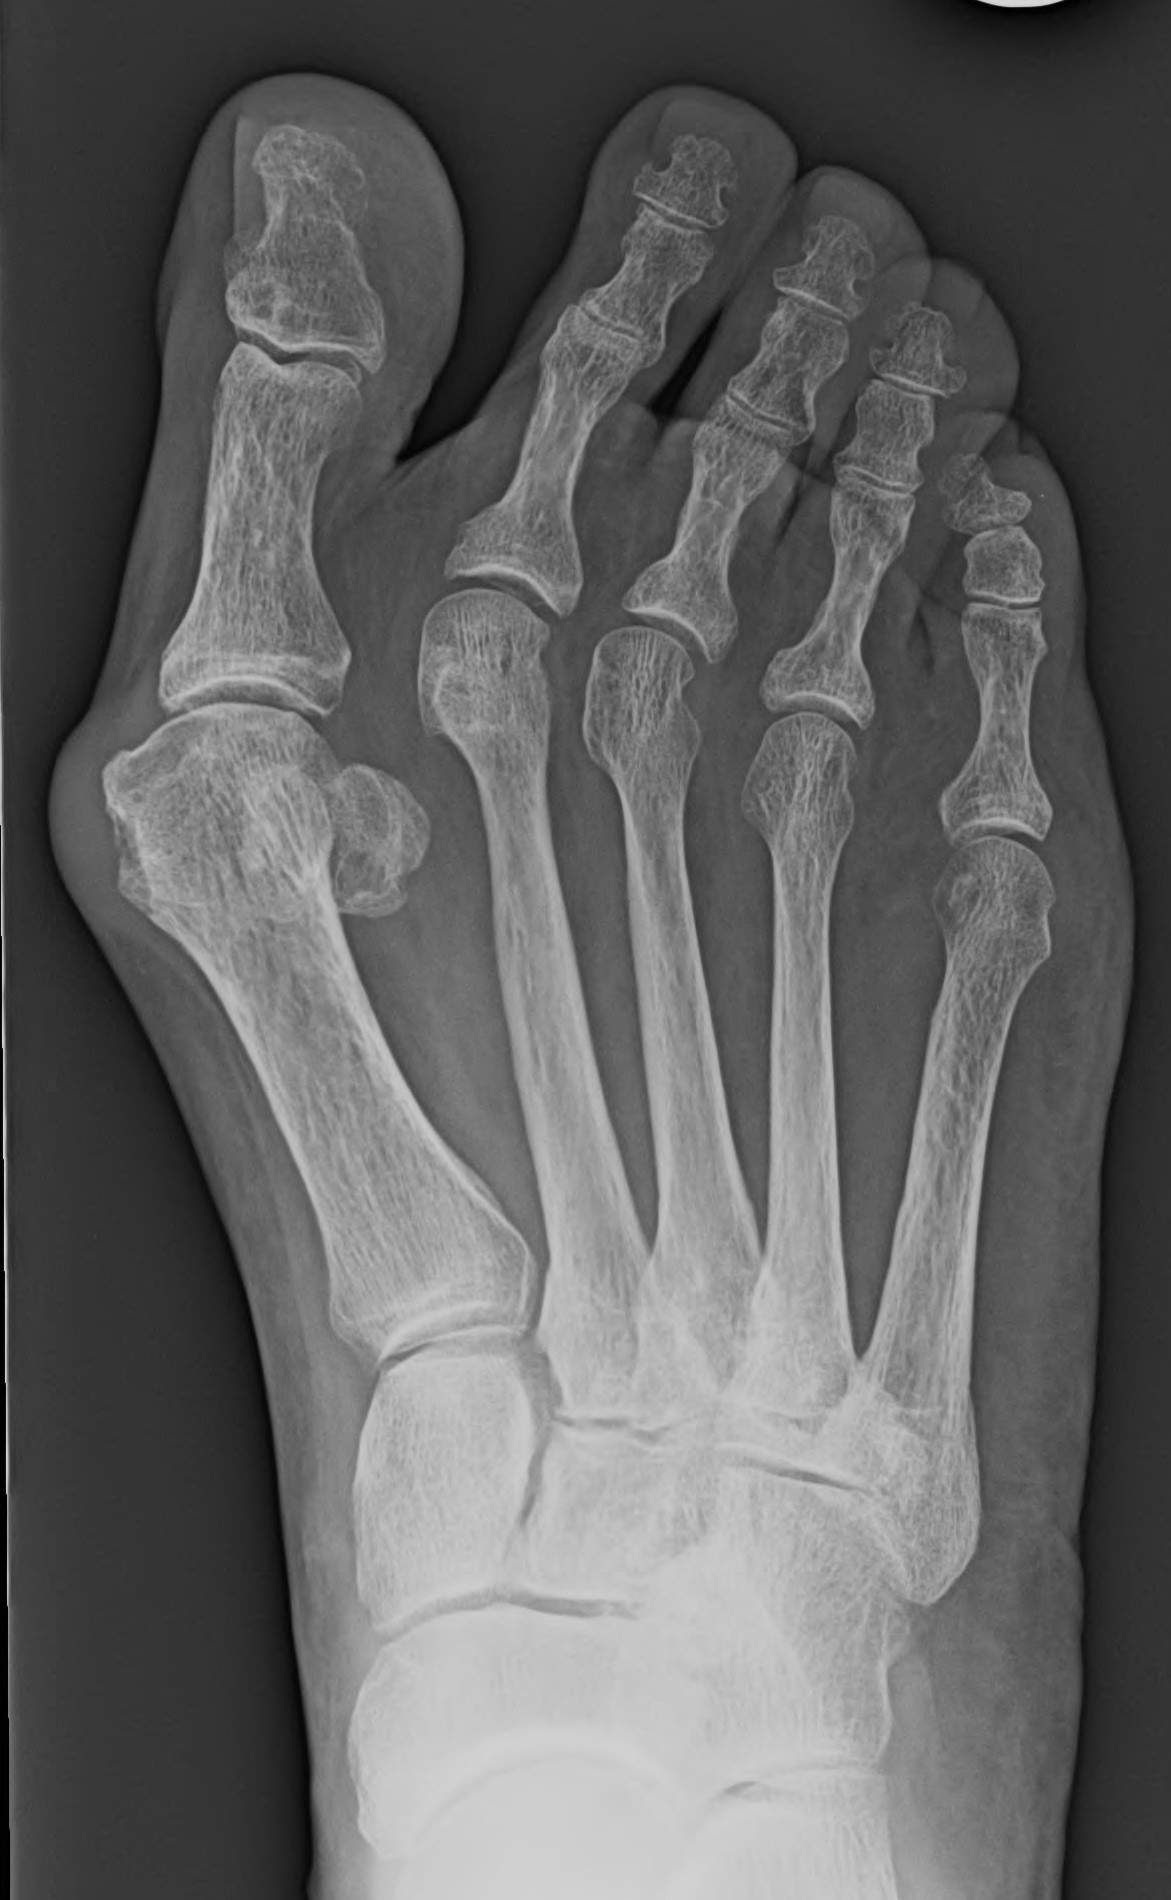 Bunion with Malaligned Toes